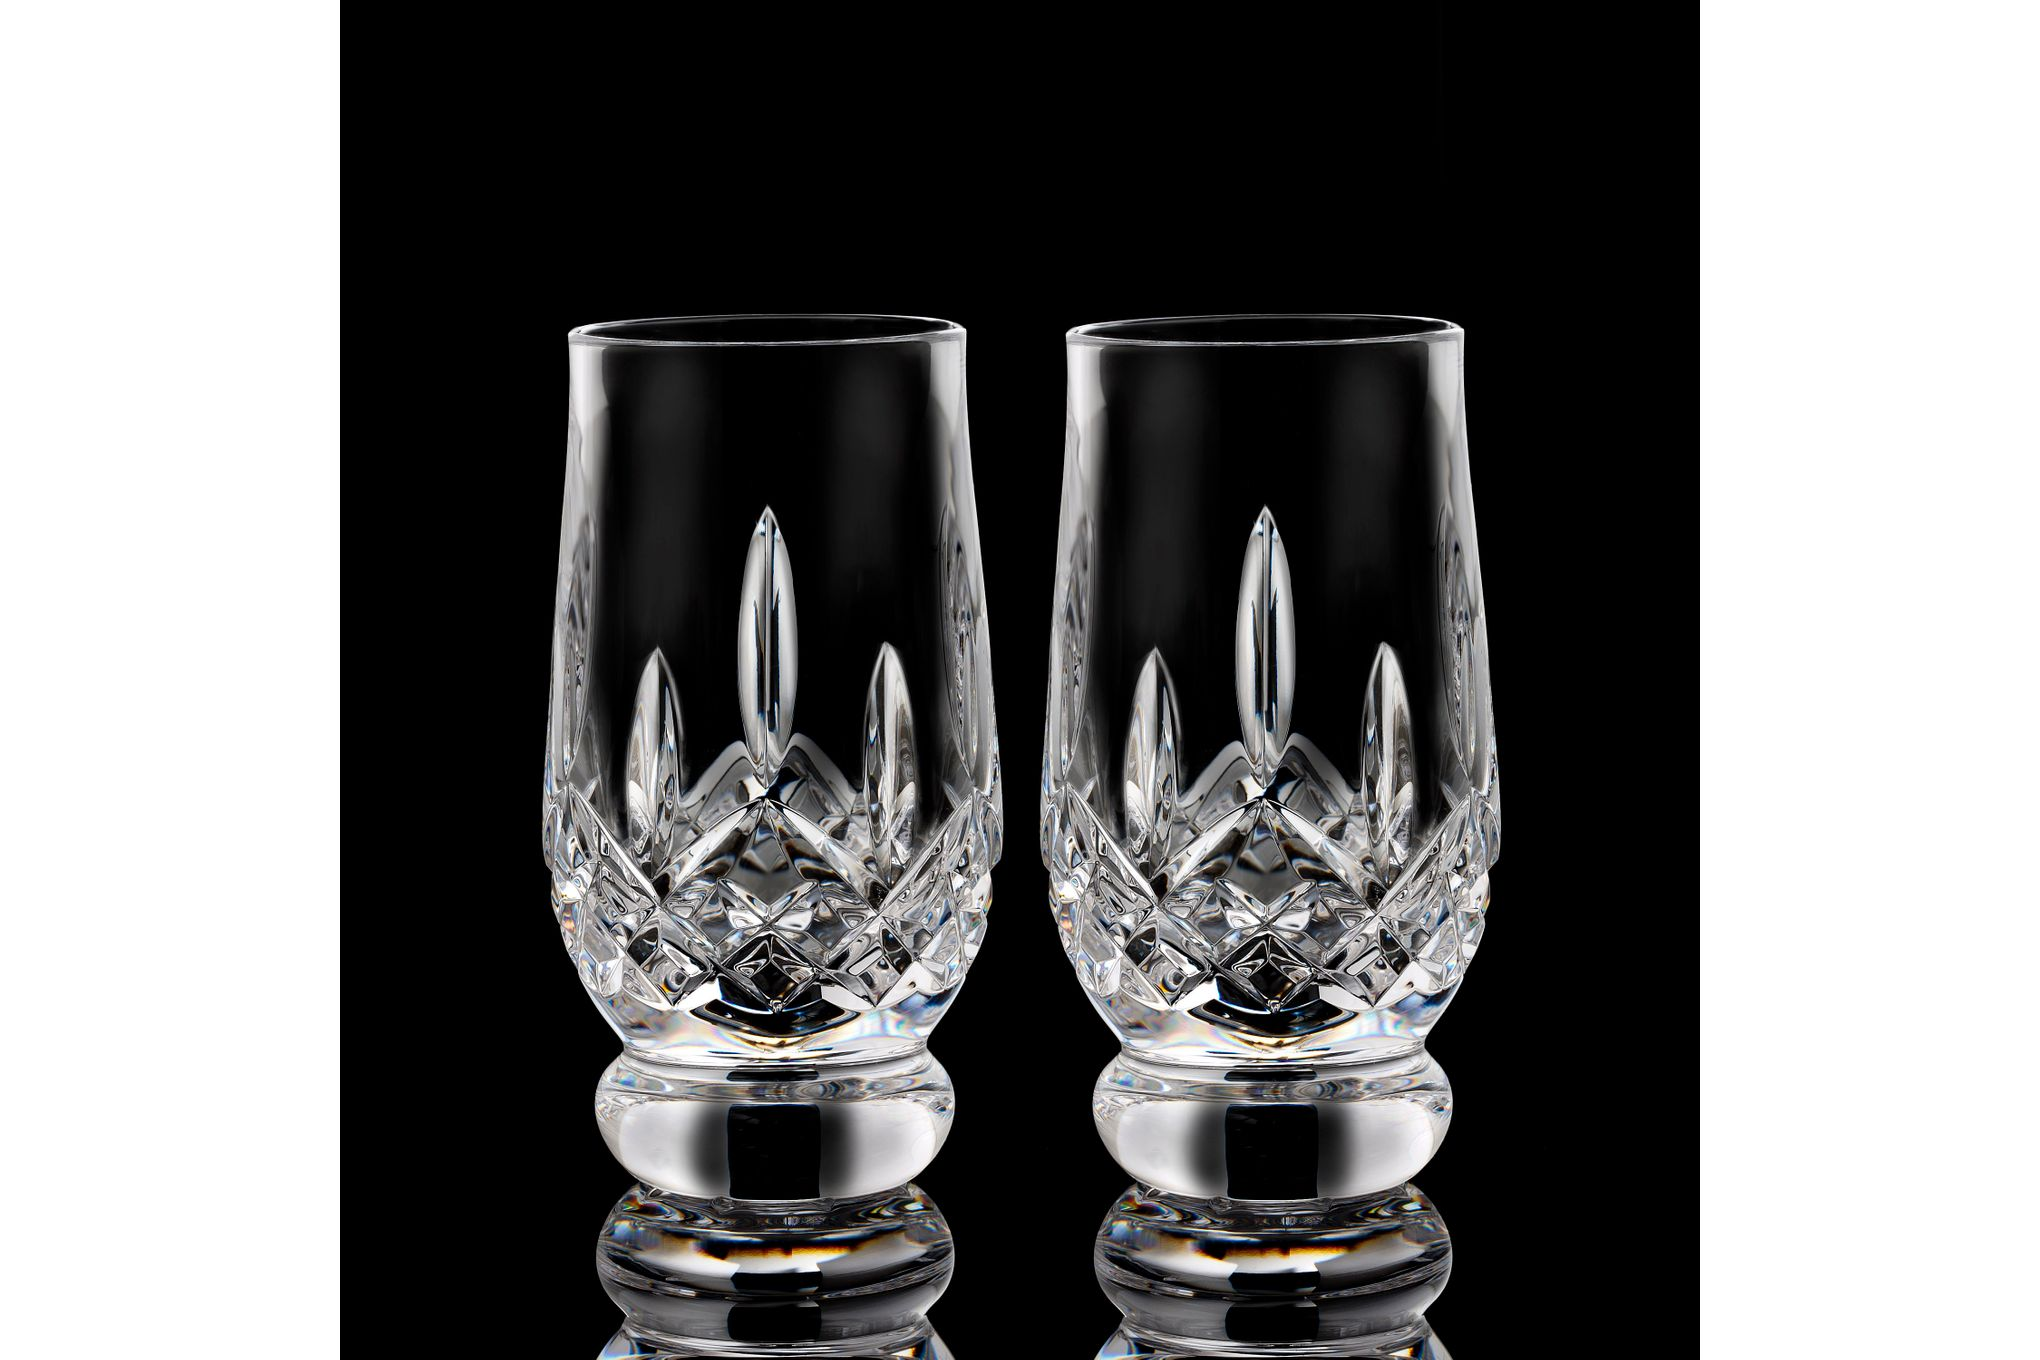 Waterford Lismore Connoisseur Collection Pair of Tumblers 7oz Tasting Footed Tumbler thumb 2